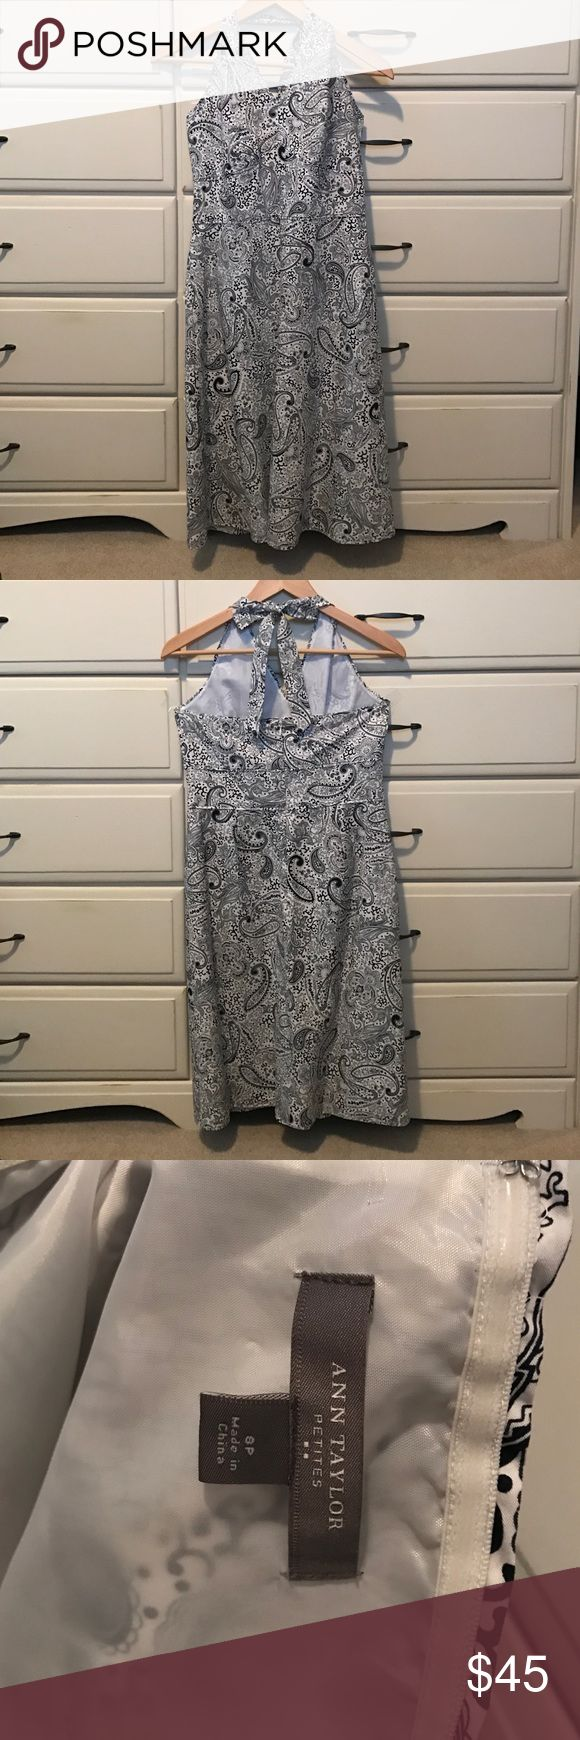 Ann Taylor Halter Dress 8 Petite Adorable Ann Taylor halter dress in navy and white Print. Size 8 Petite.  Back zip and neck tie in back.  Has sarin like lining.  Great dress for any occasion! Ann Taylor Dresses